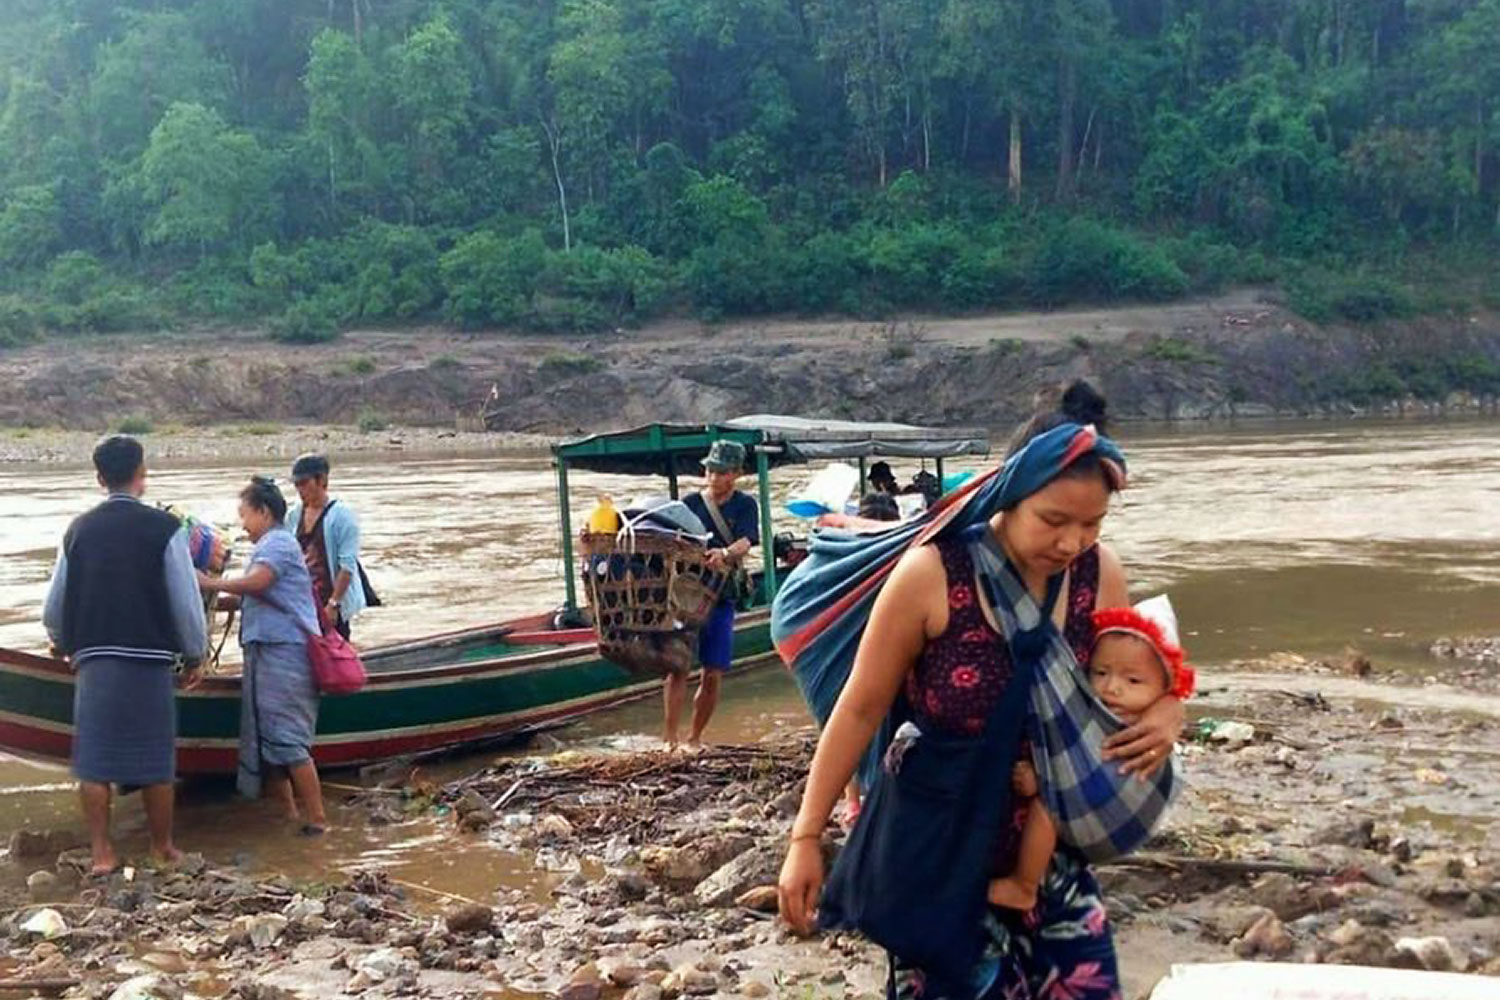 A humanitarian crisis by the Salween River